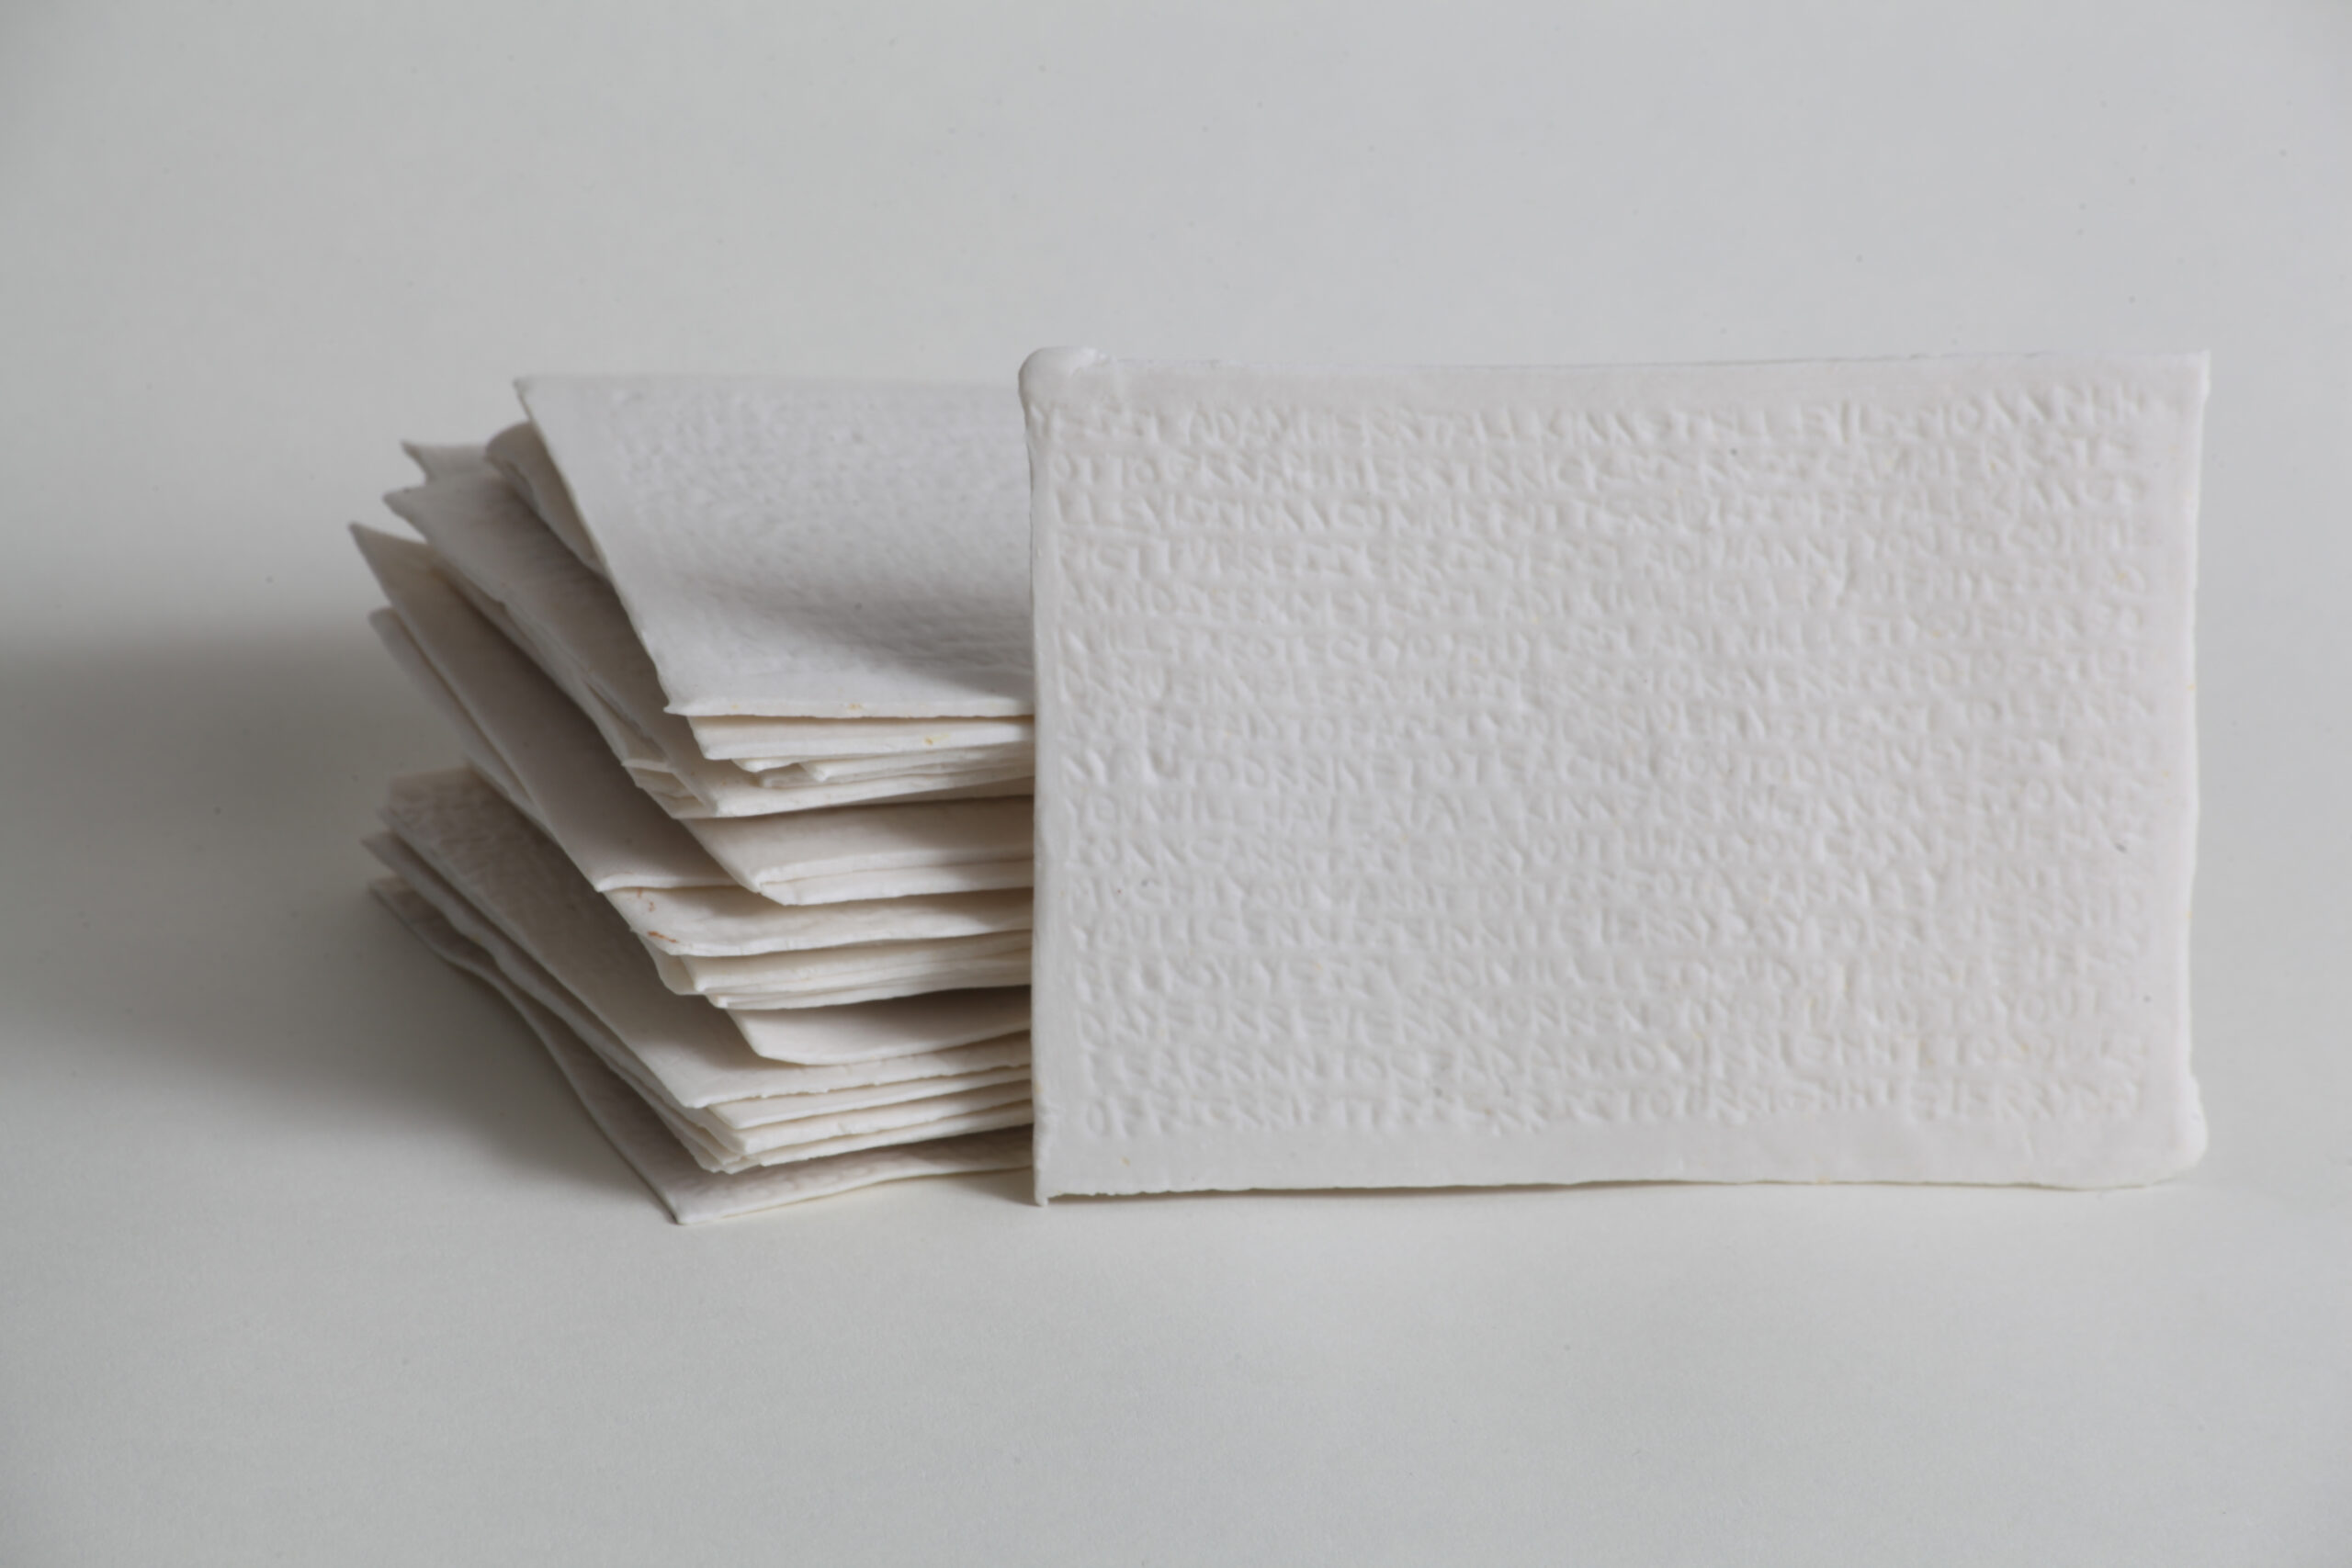 A stack of white porcelain postcards photographed on a white background.